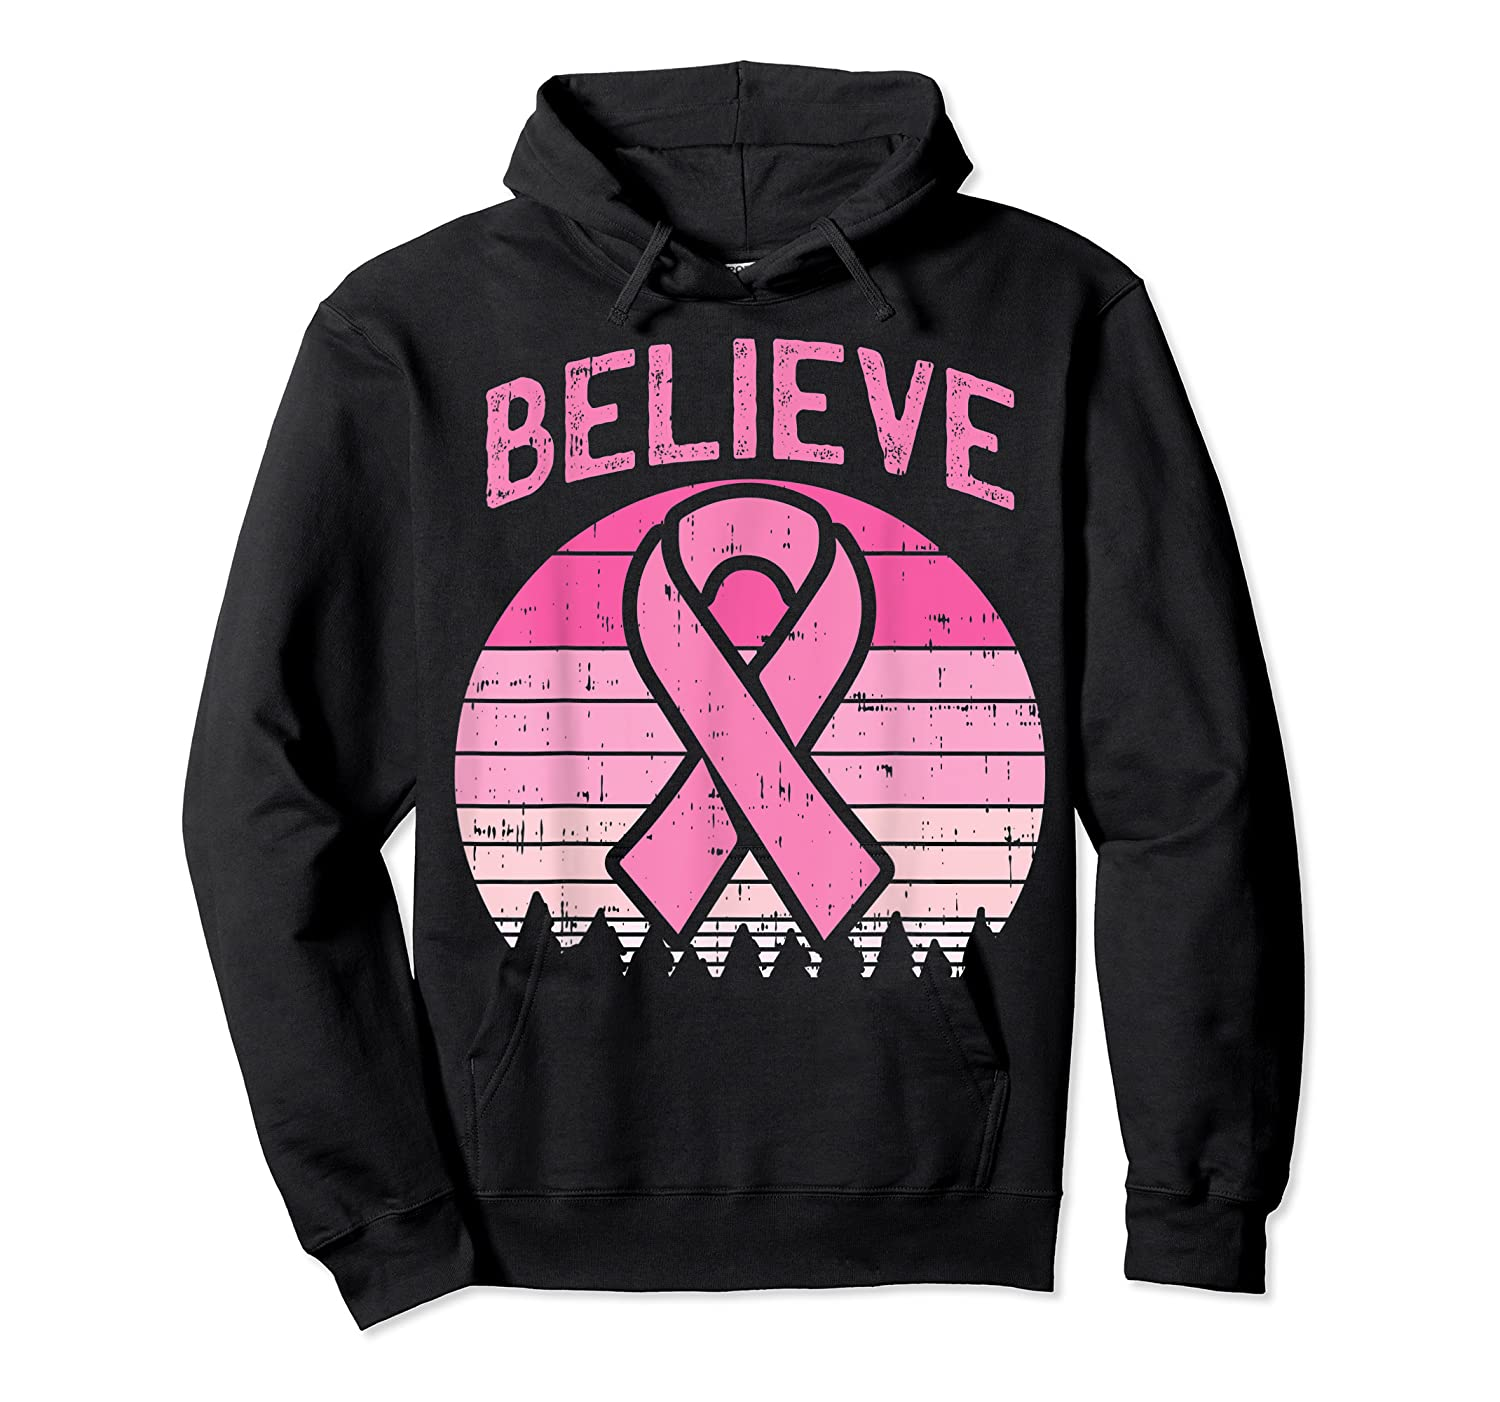 Believe Retro Sunset Pink Ribbon Breast Cancer Awareness T Shirt Unisex Pullover Hoodie